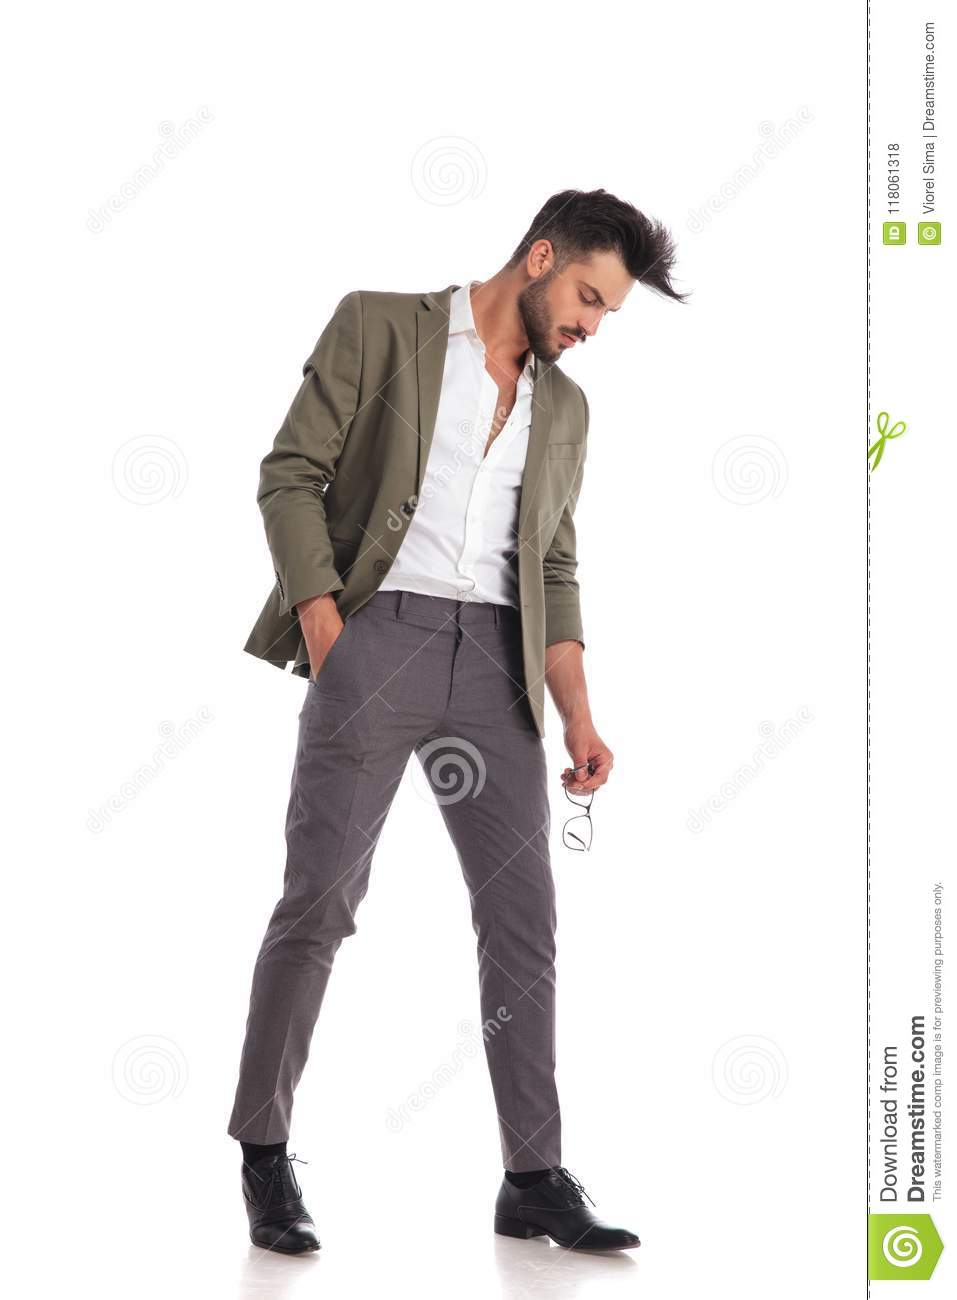 Elegant Man Posing While Looking Down To Side Stock Photo Image Of Glasses Collar 118061318